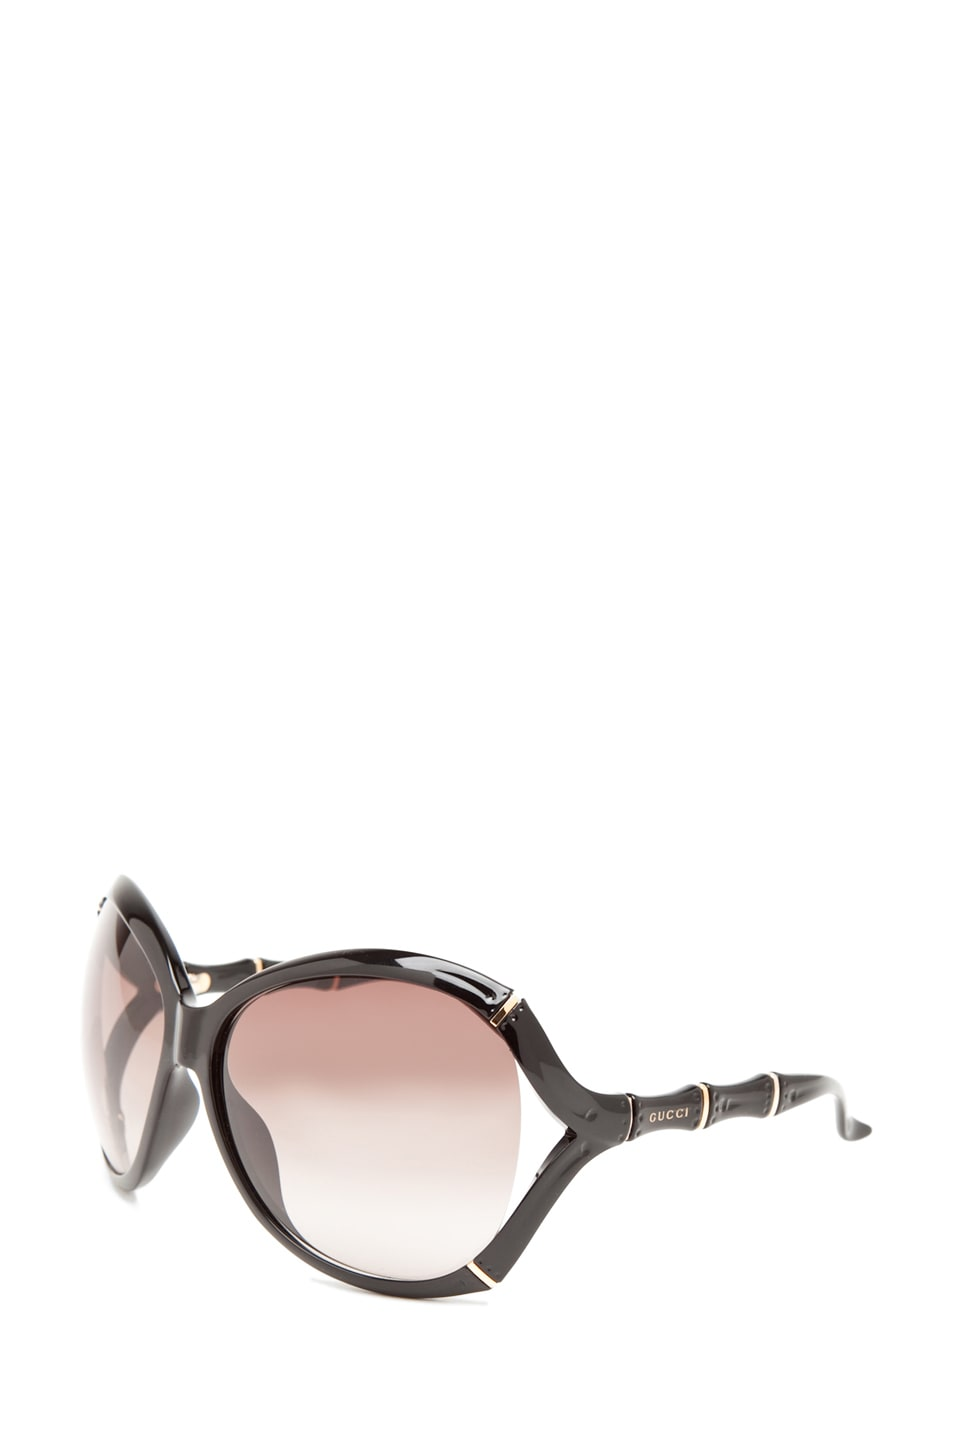 Image 2 of Gucci 3509 Sunglasses in Shiny Black